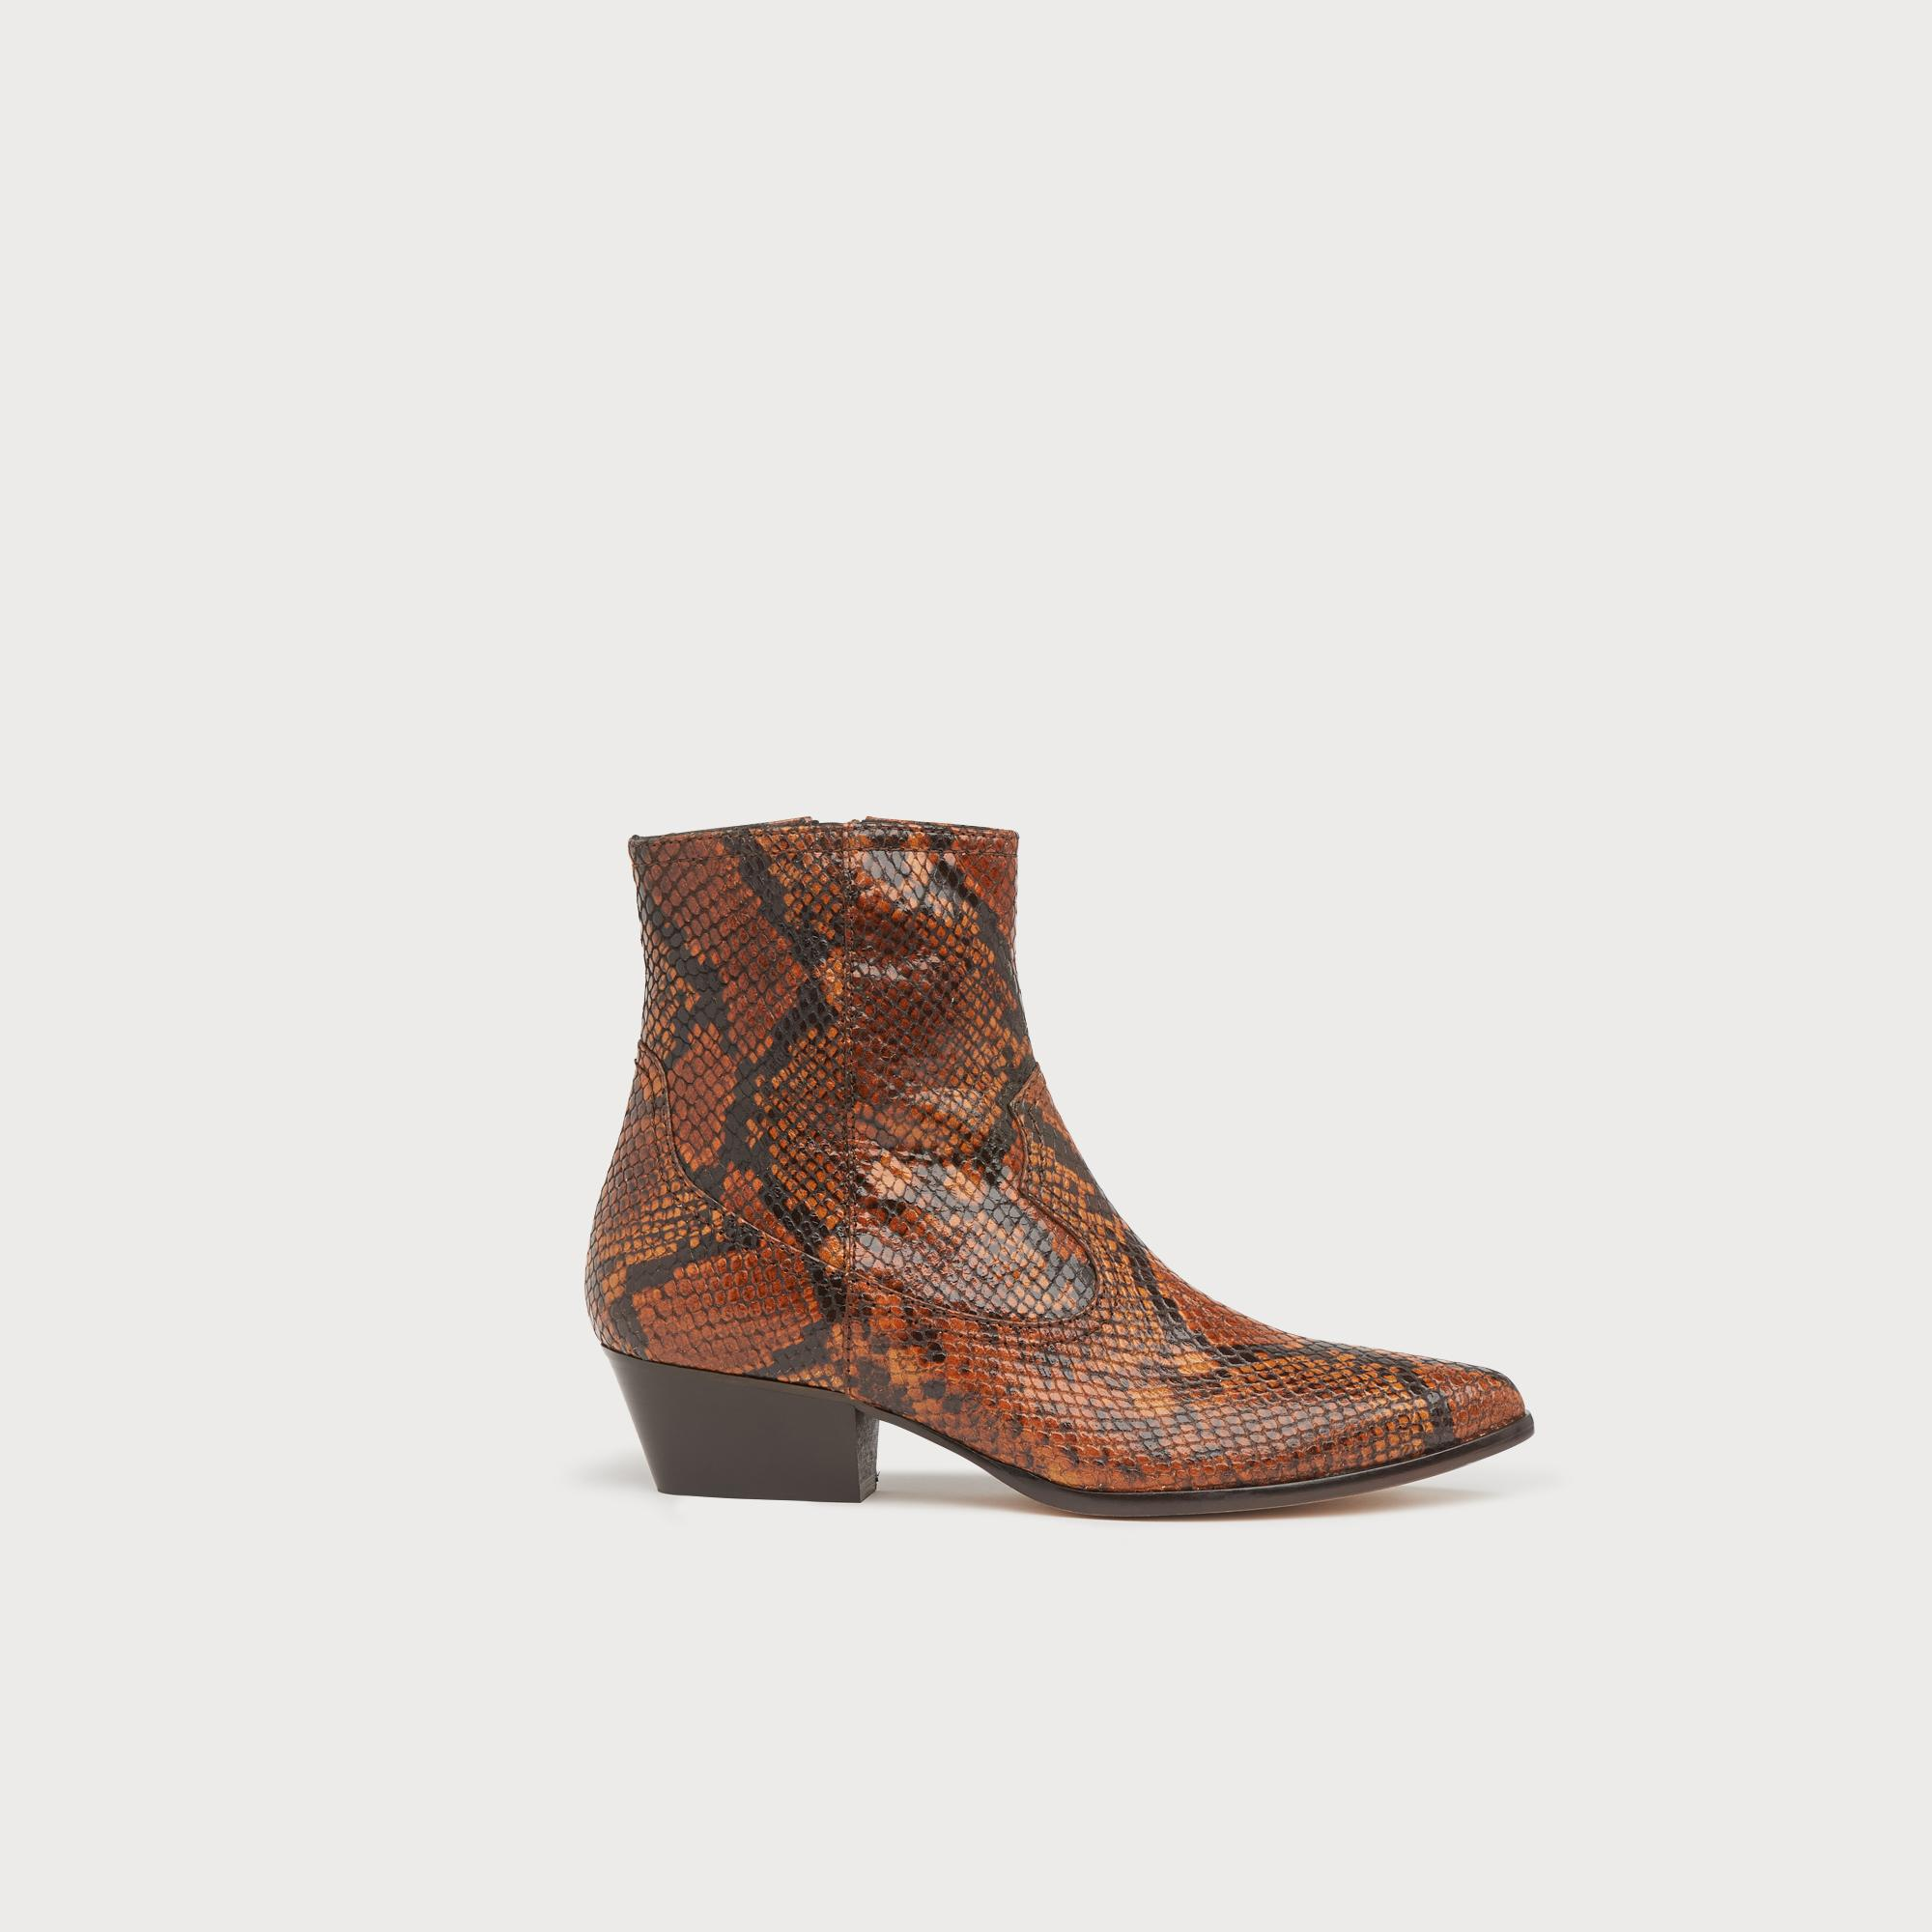 82660ca3b3 Choral Snake Print Leather Cowboy Boots